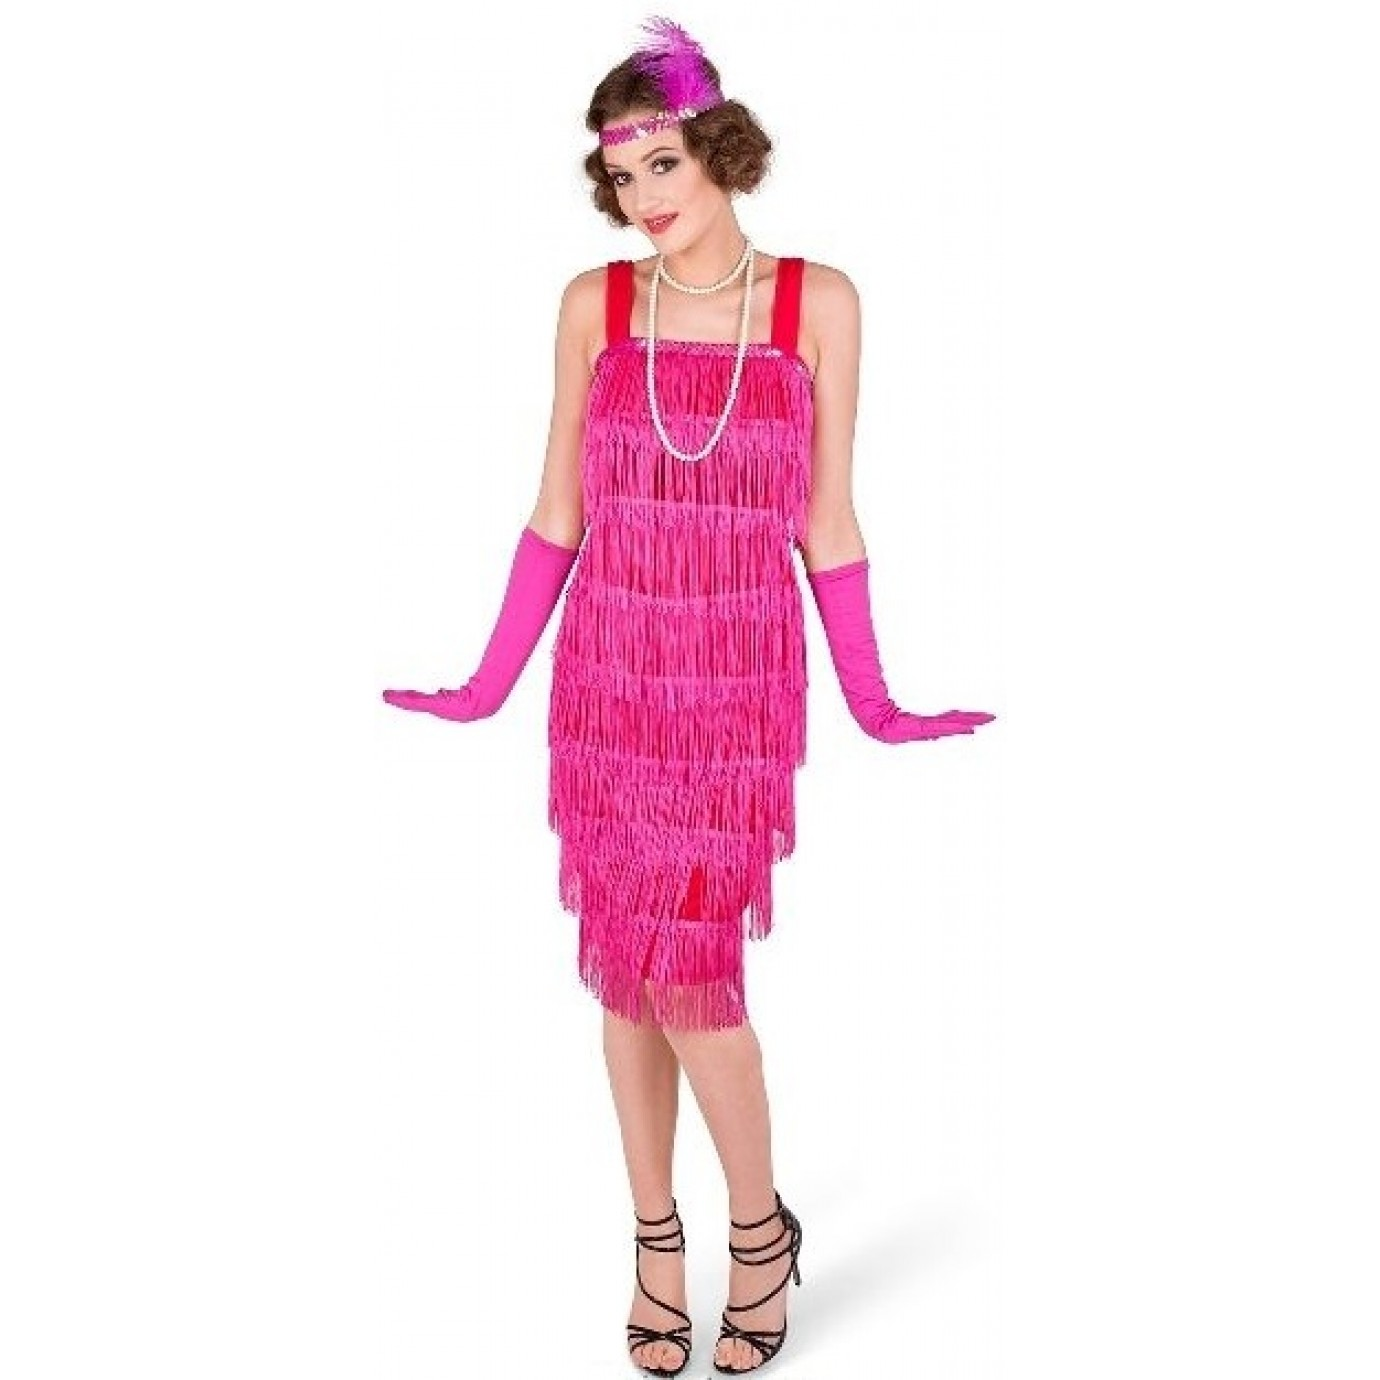 6a438b3259f2 Adult Costume - Karnival, Flapper Dress Pink | Women's General | Female |  Shop by Size | Costumes | The Party People Shop